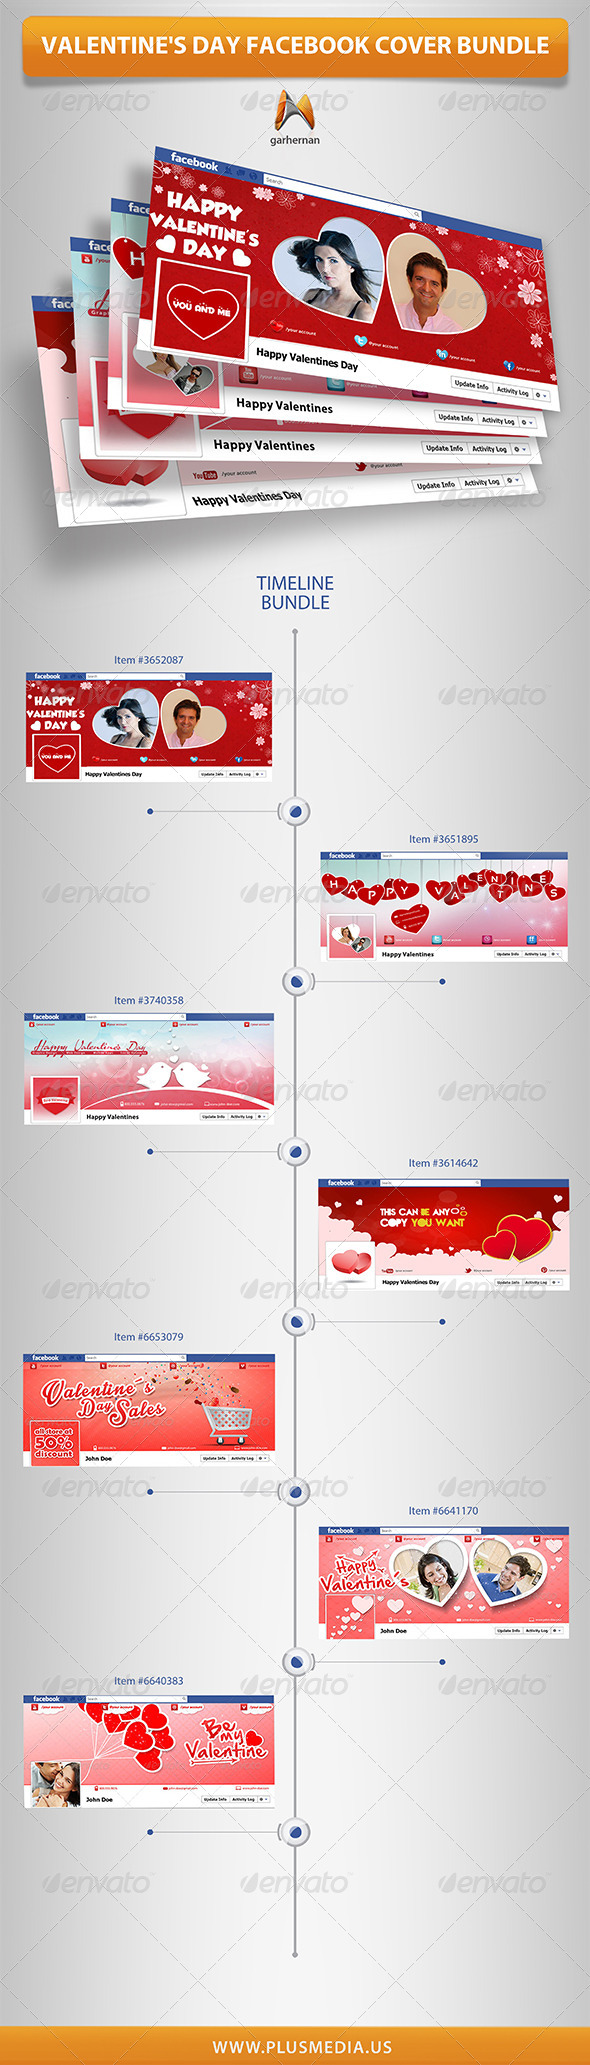 Valentine's Day Facebook Cover Bundle - Facebook Timeline Covers Social Media